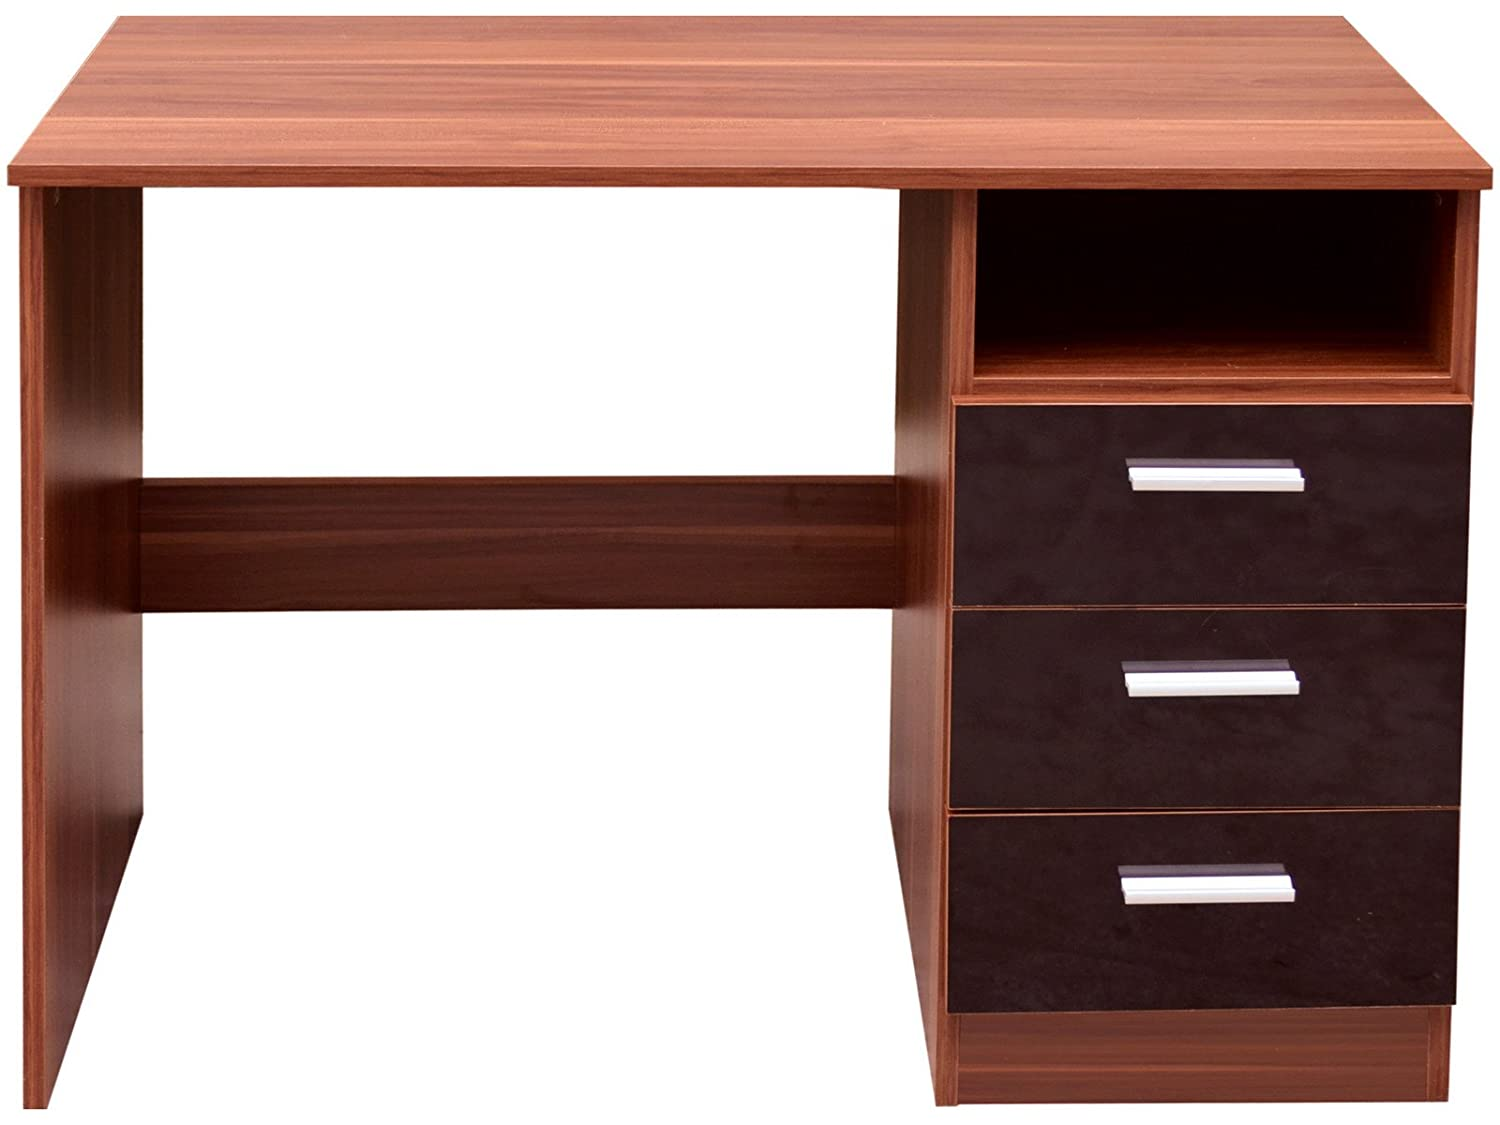 High Gloss Ottawa Caspian Black Walnut Dressing Table Only - Black gloss dressing table